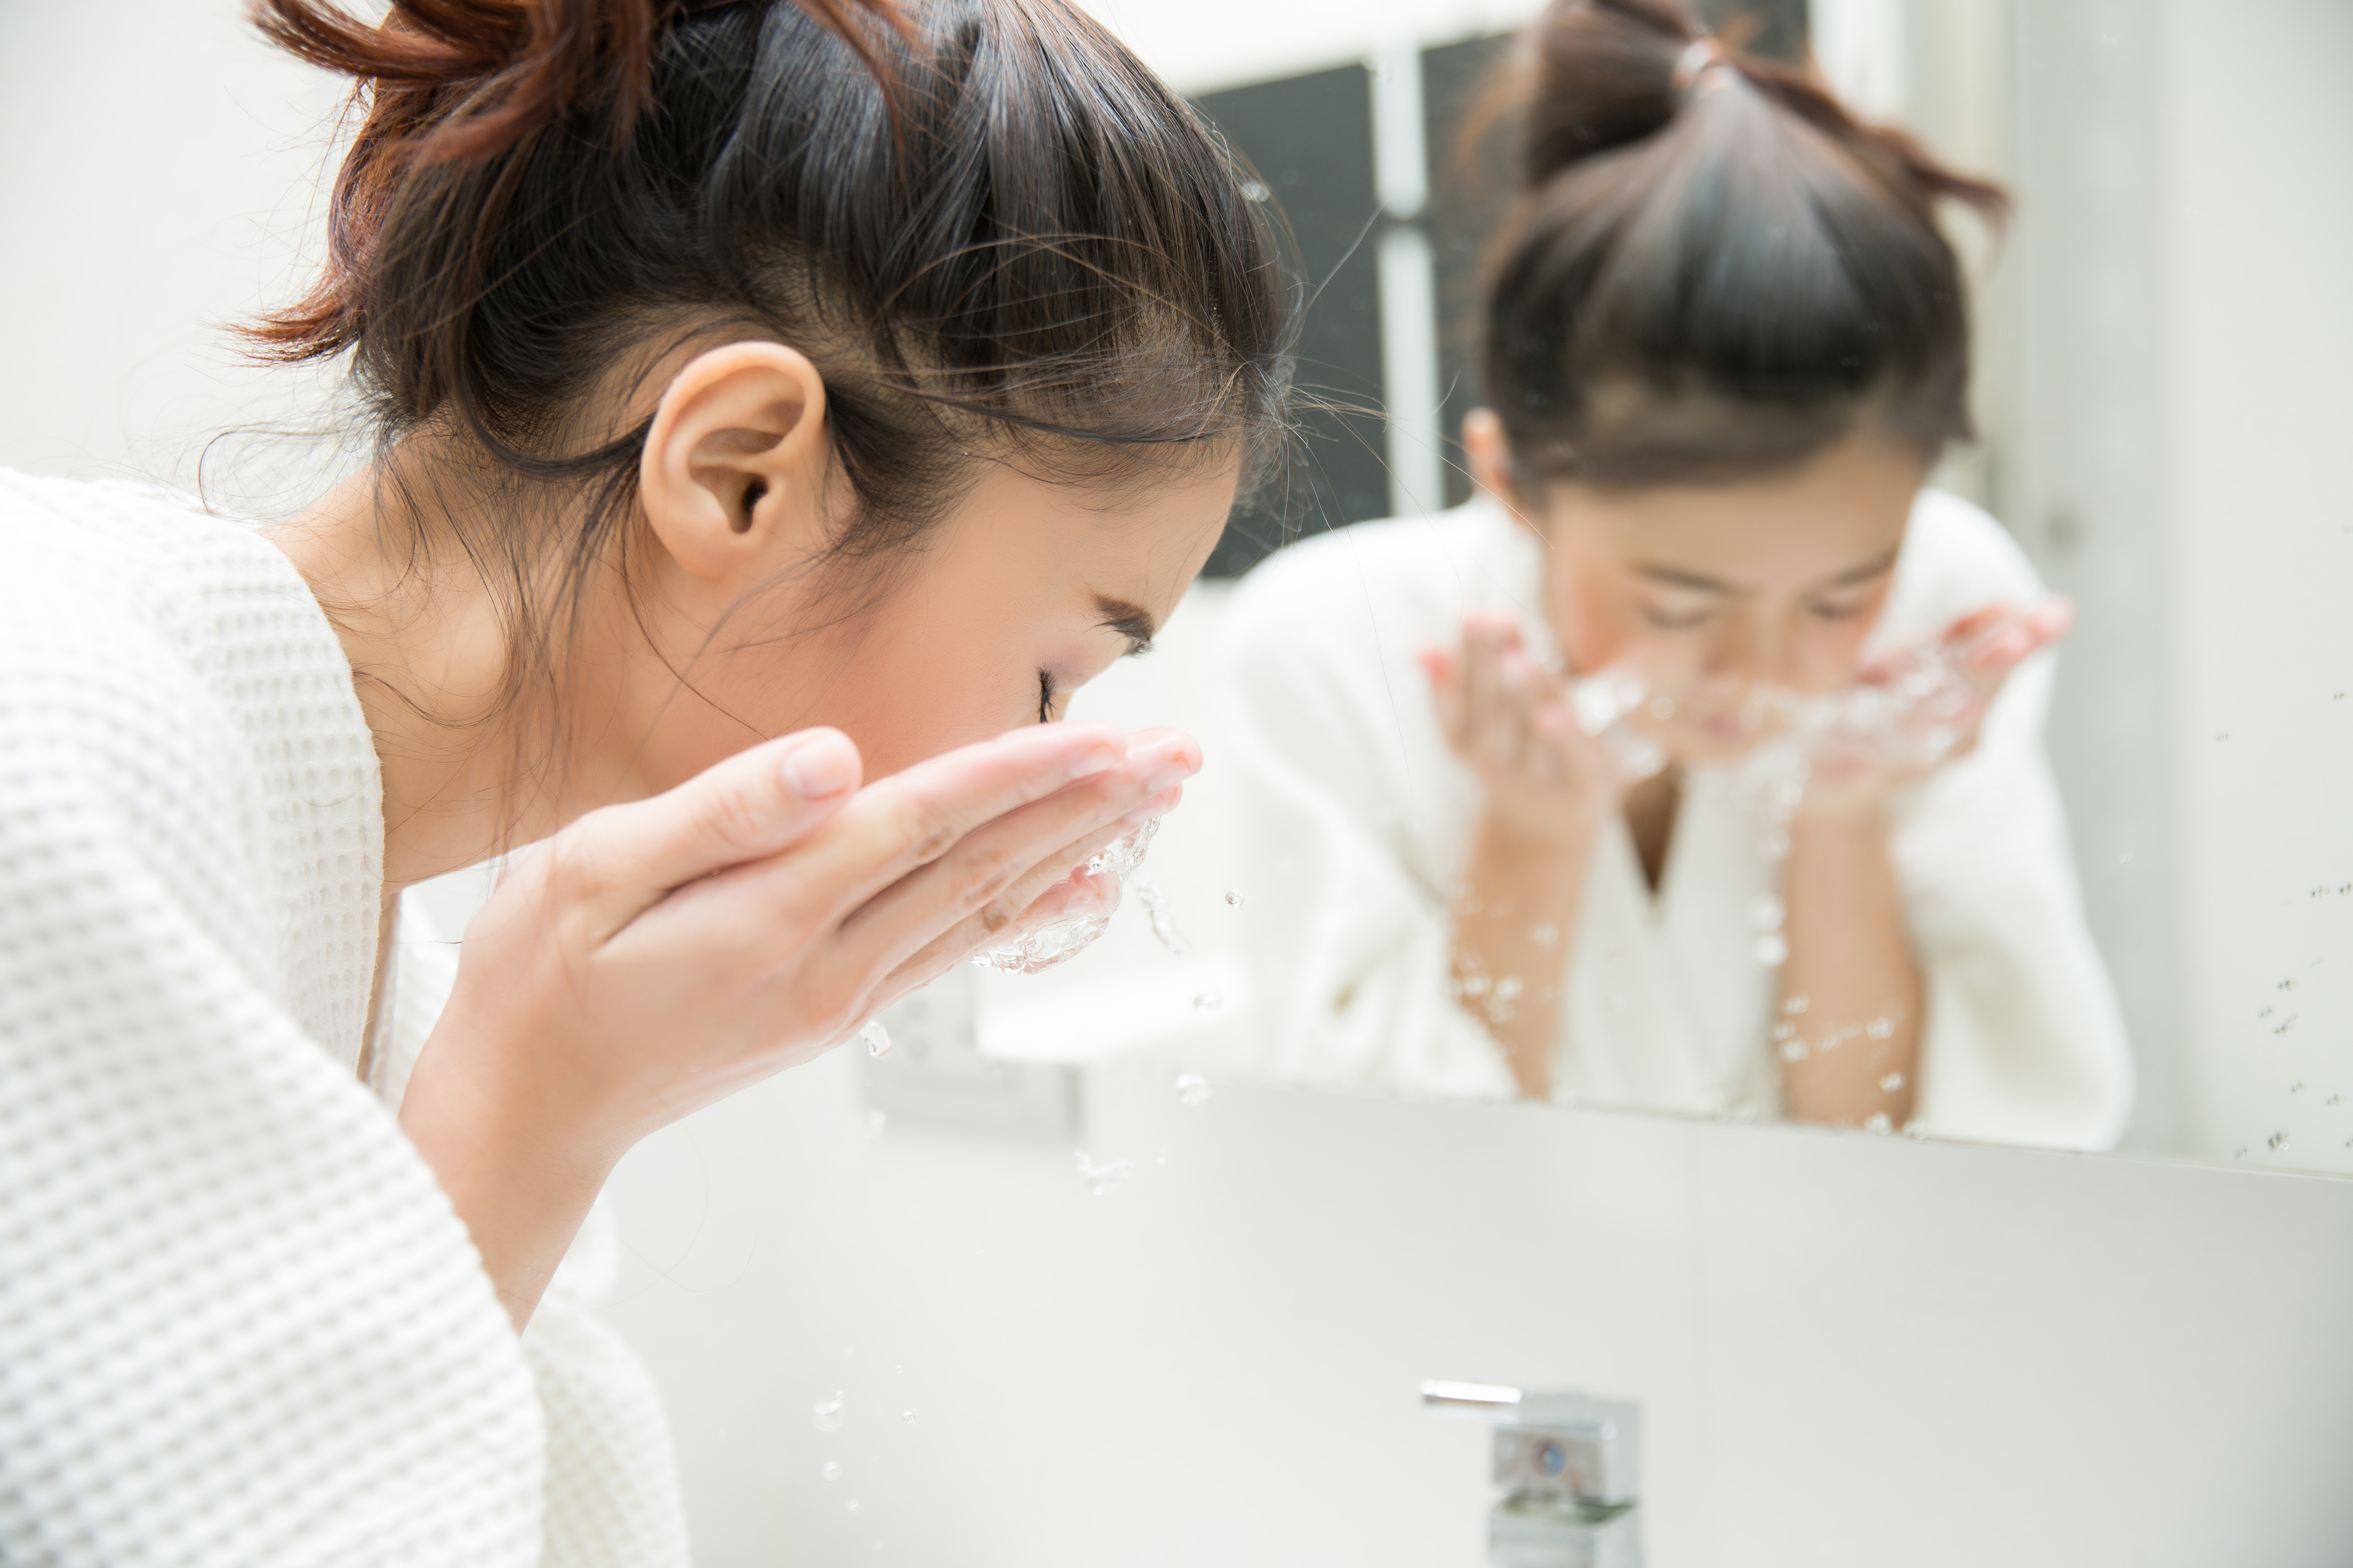 young woman washing her face, acne care, skincare